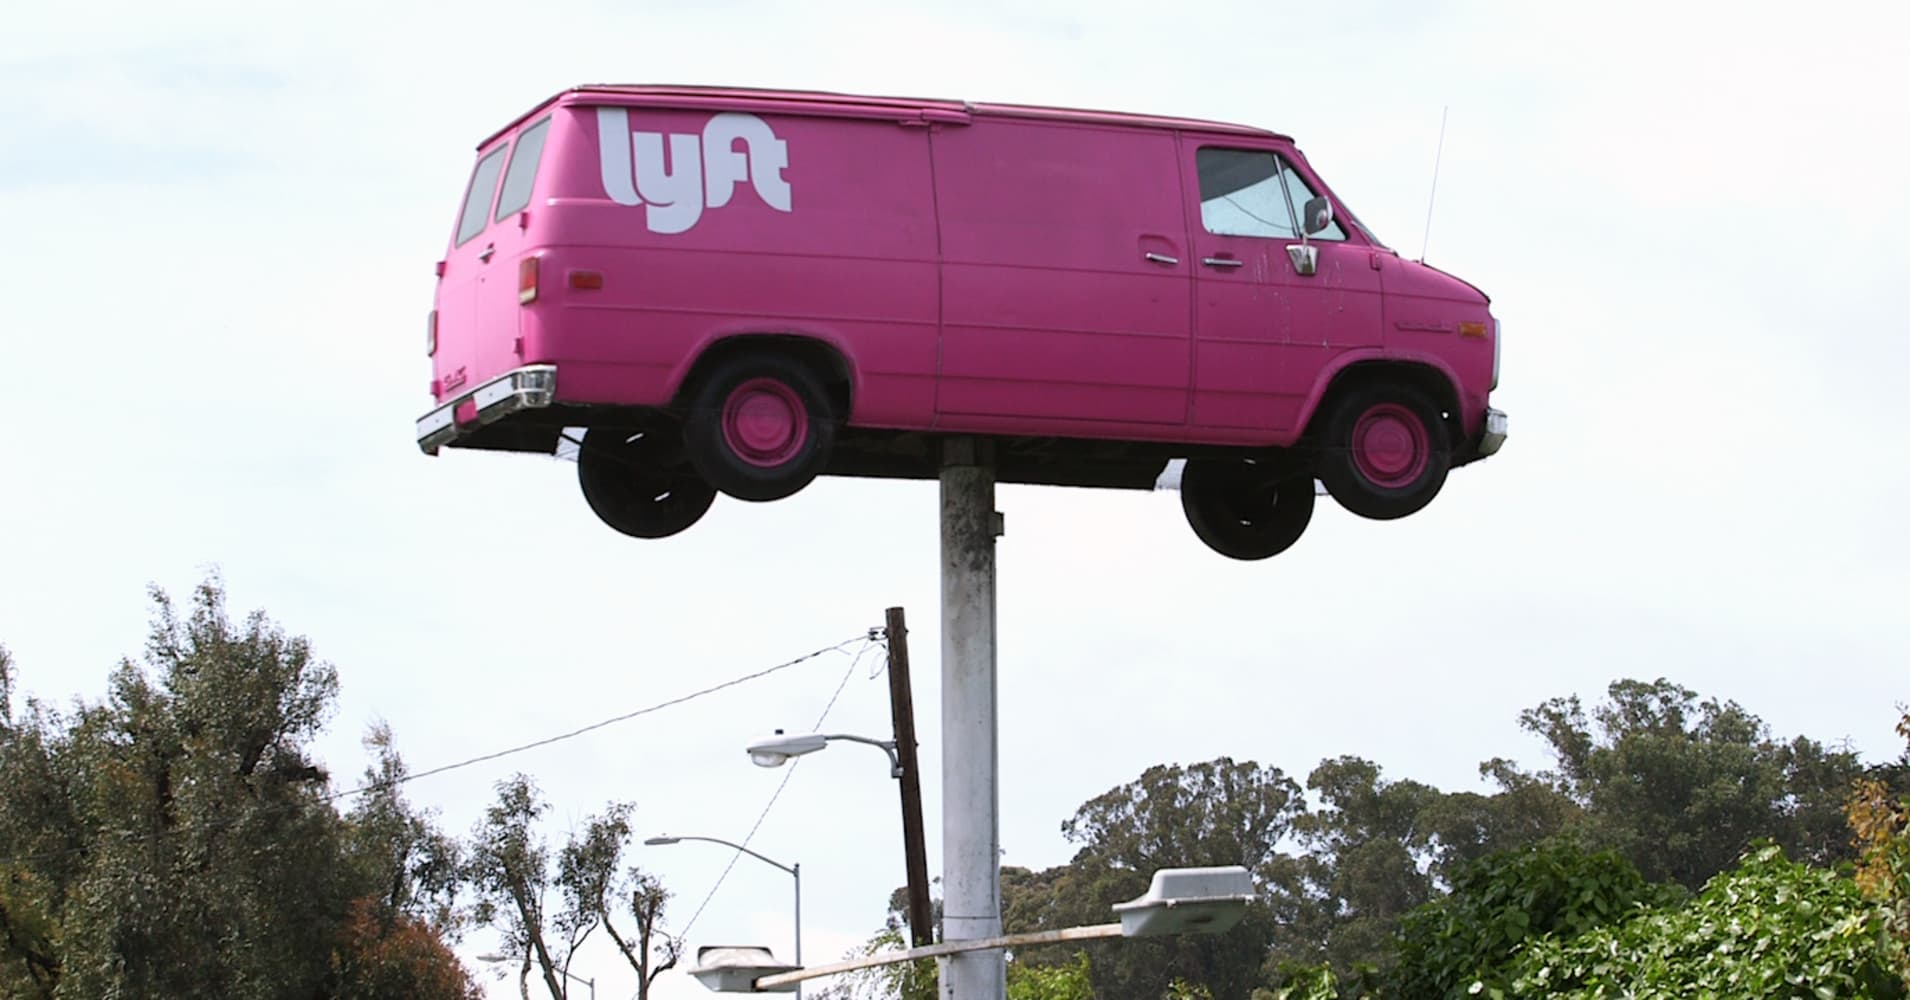 Ride-hailing platform Lyft expects to raise as much as $2 billion in IPO